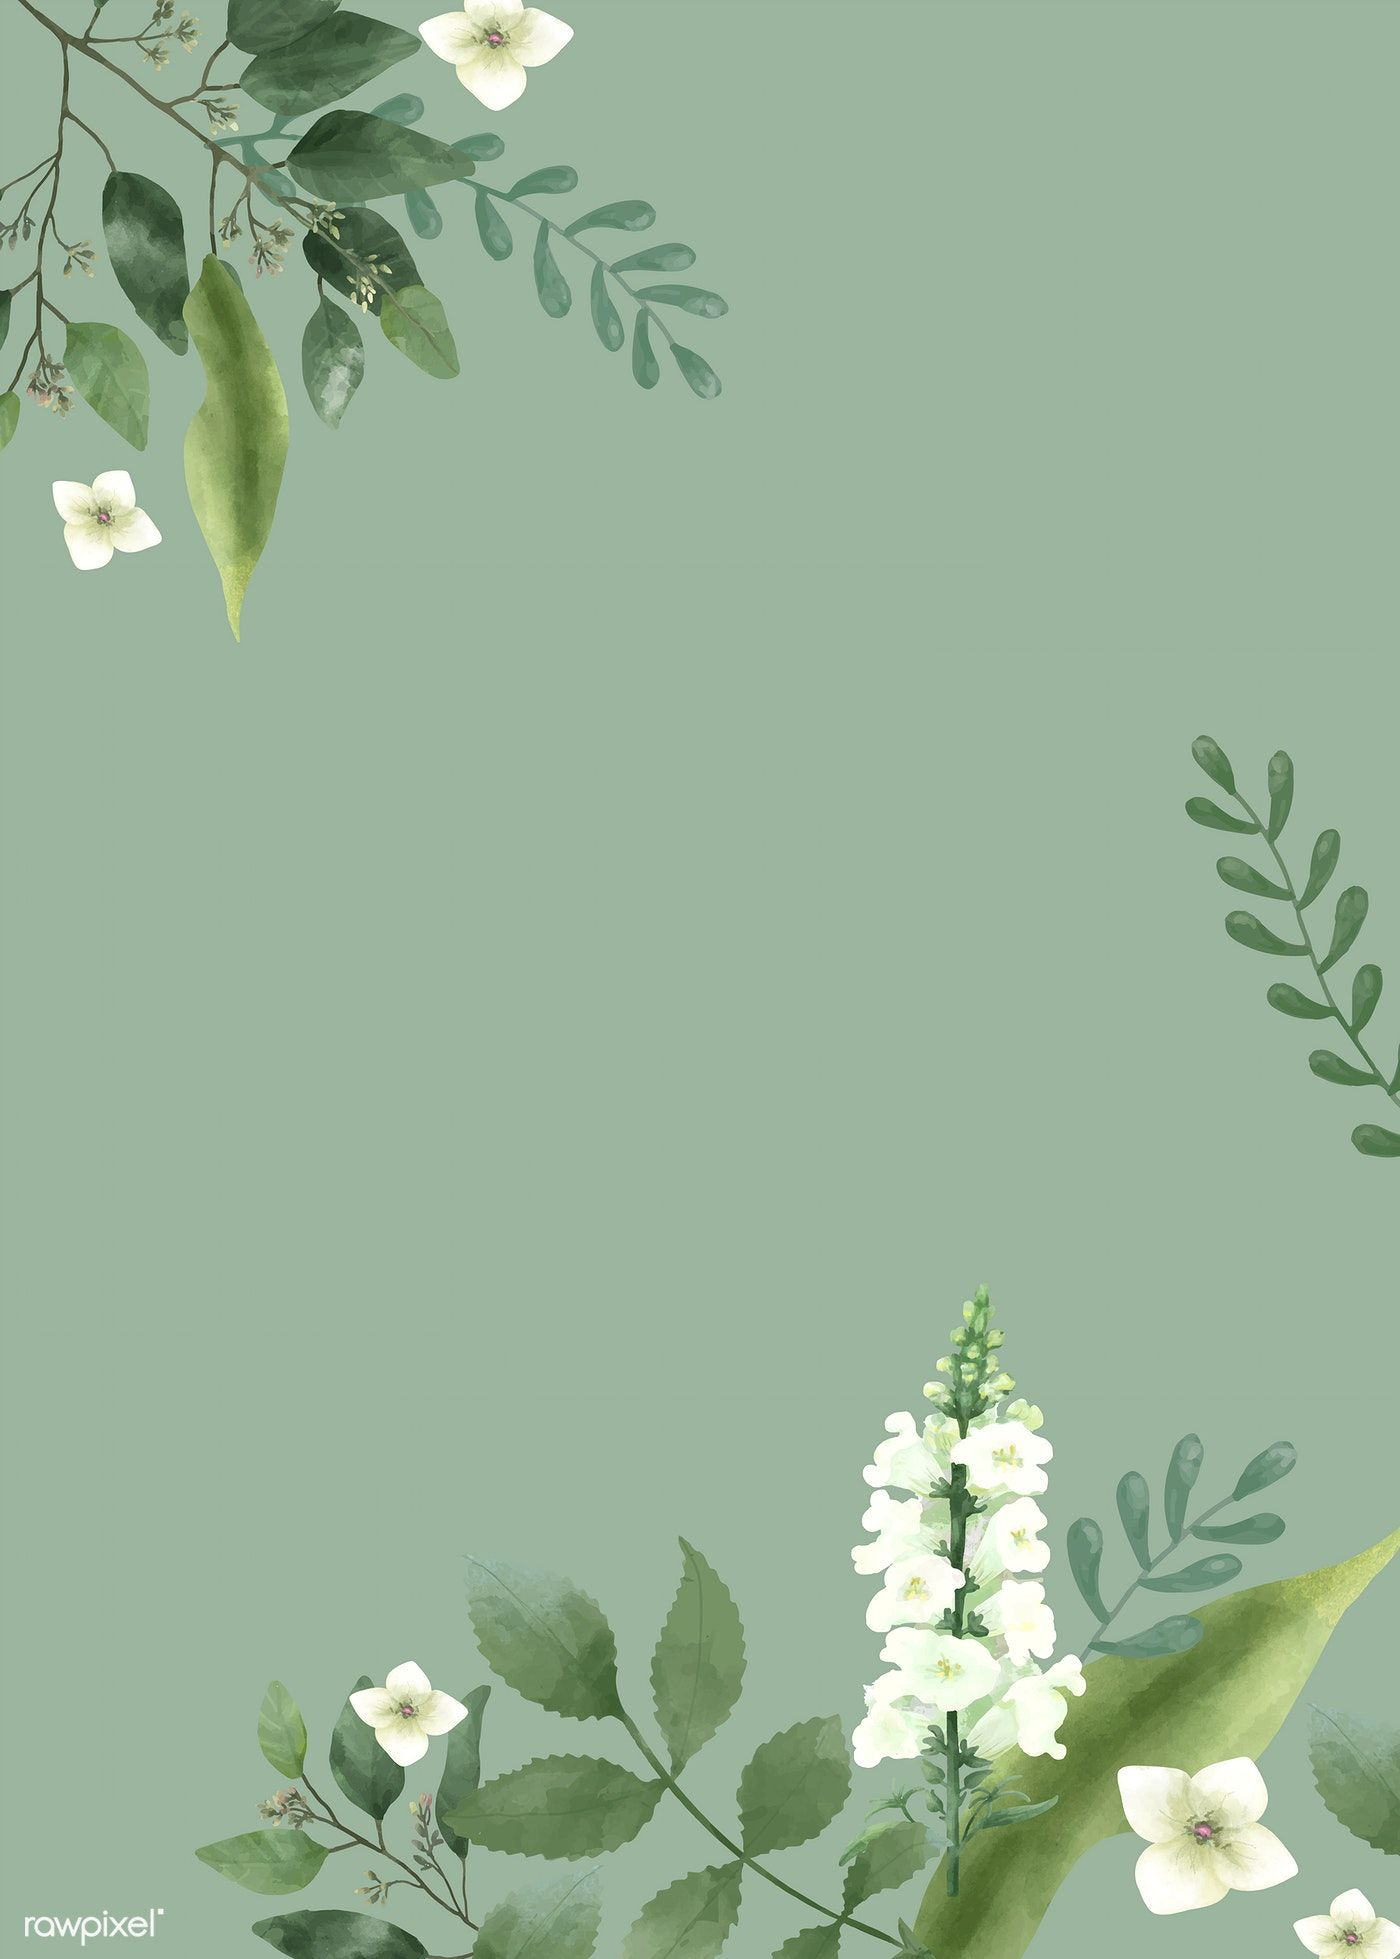 Download Premium Vector Of Invitation Card With A Green Theme